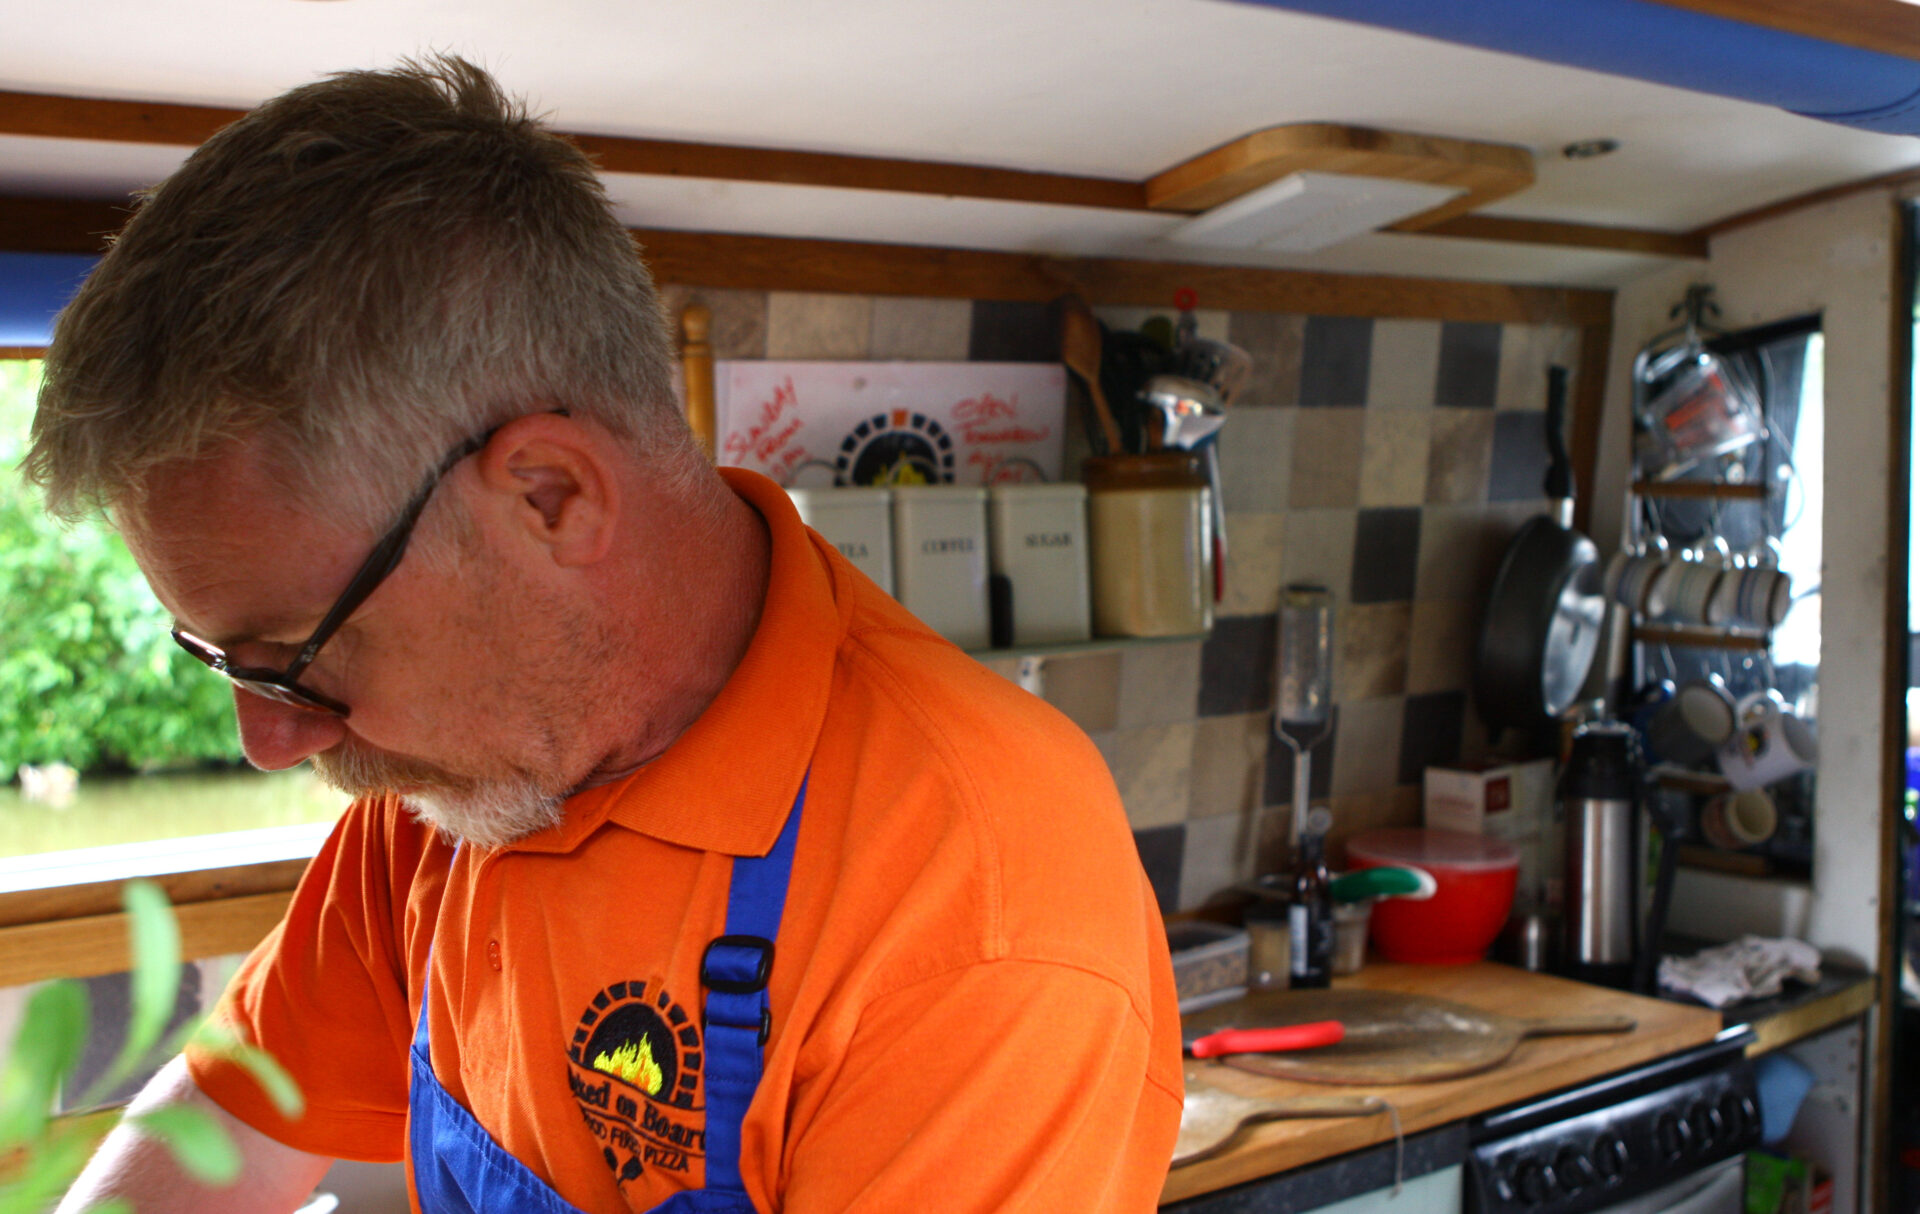 """This chap was busy feeding us all delicious fresh pizza from his """"BAKED ONBOARD"""" pizza oven boat. Check out his galley !"""